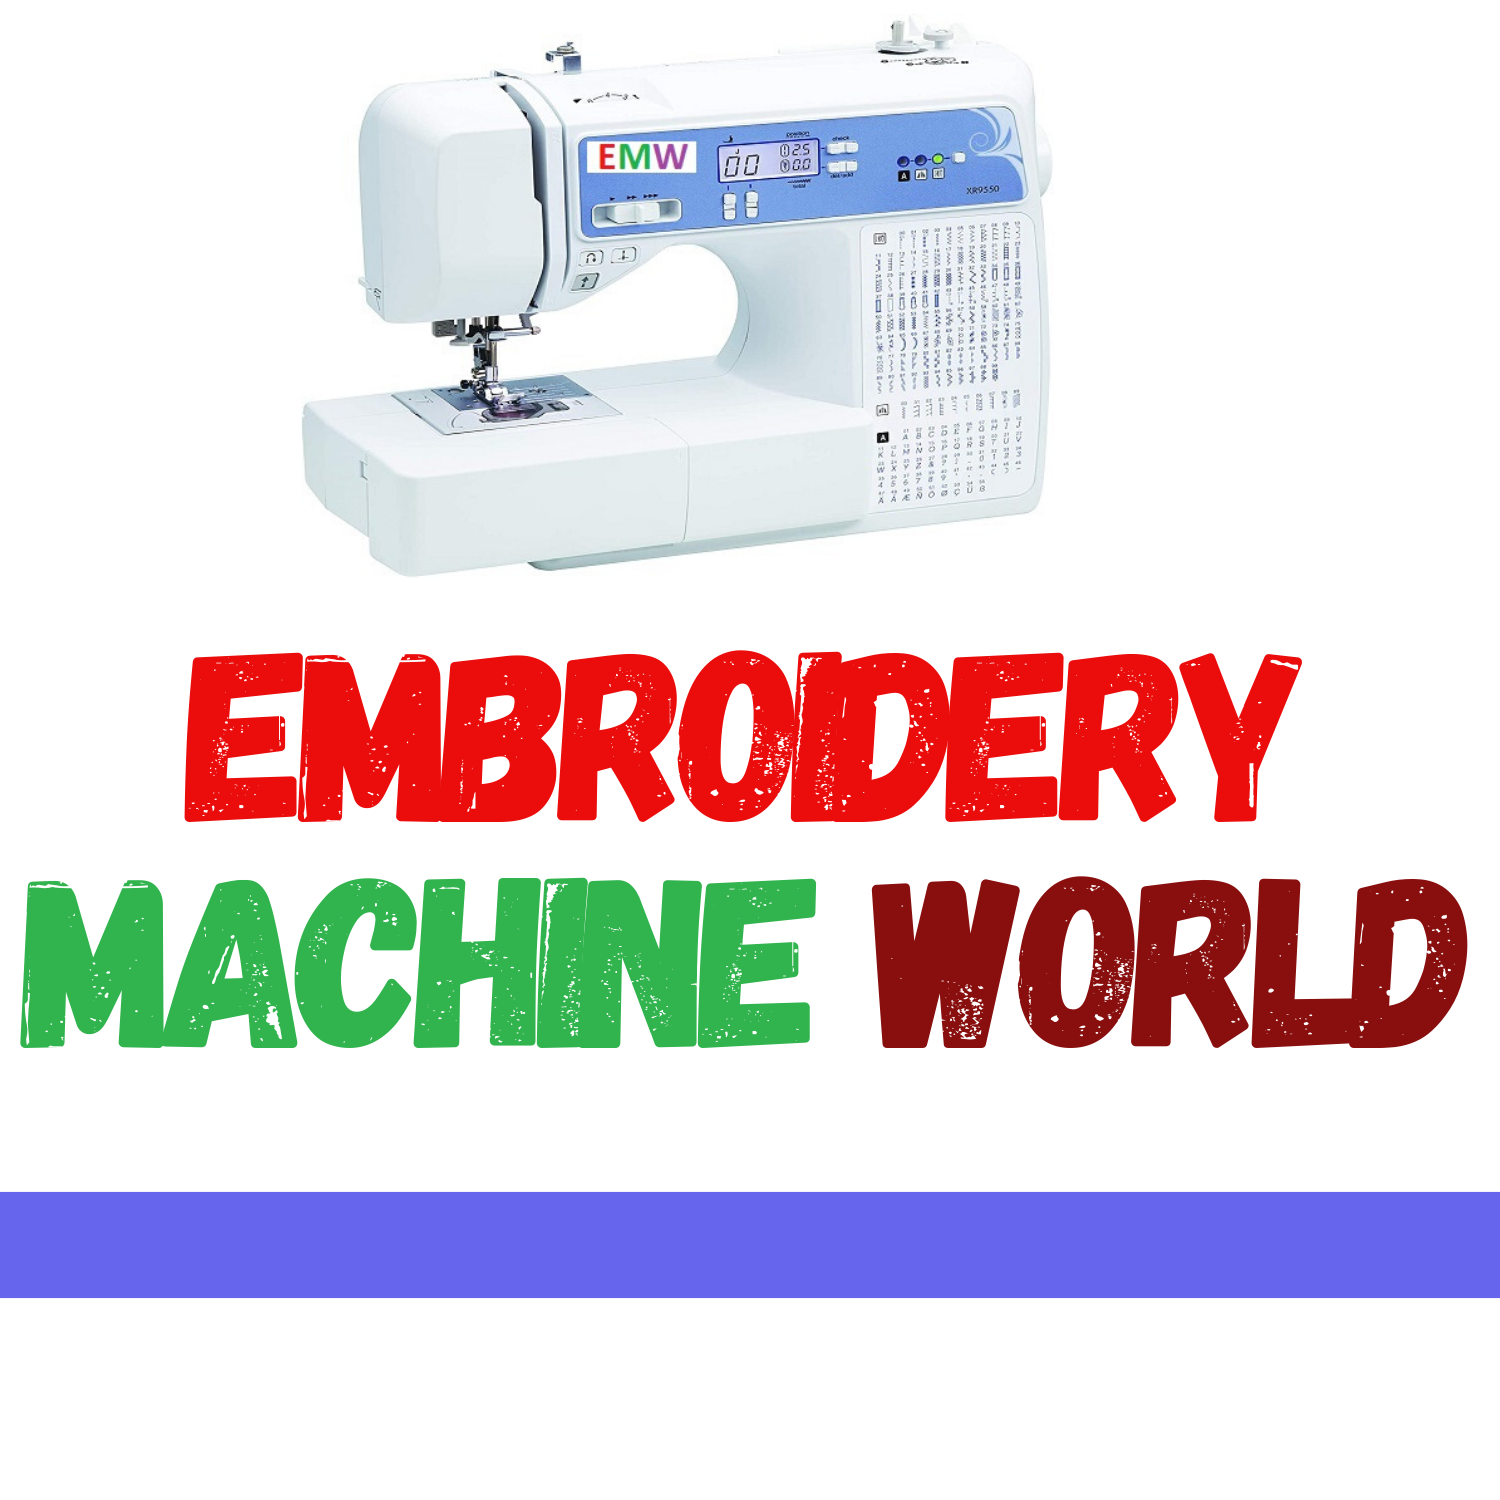 Embroidery Machine World